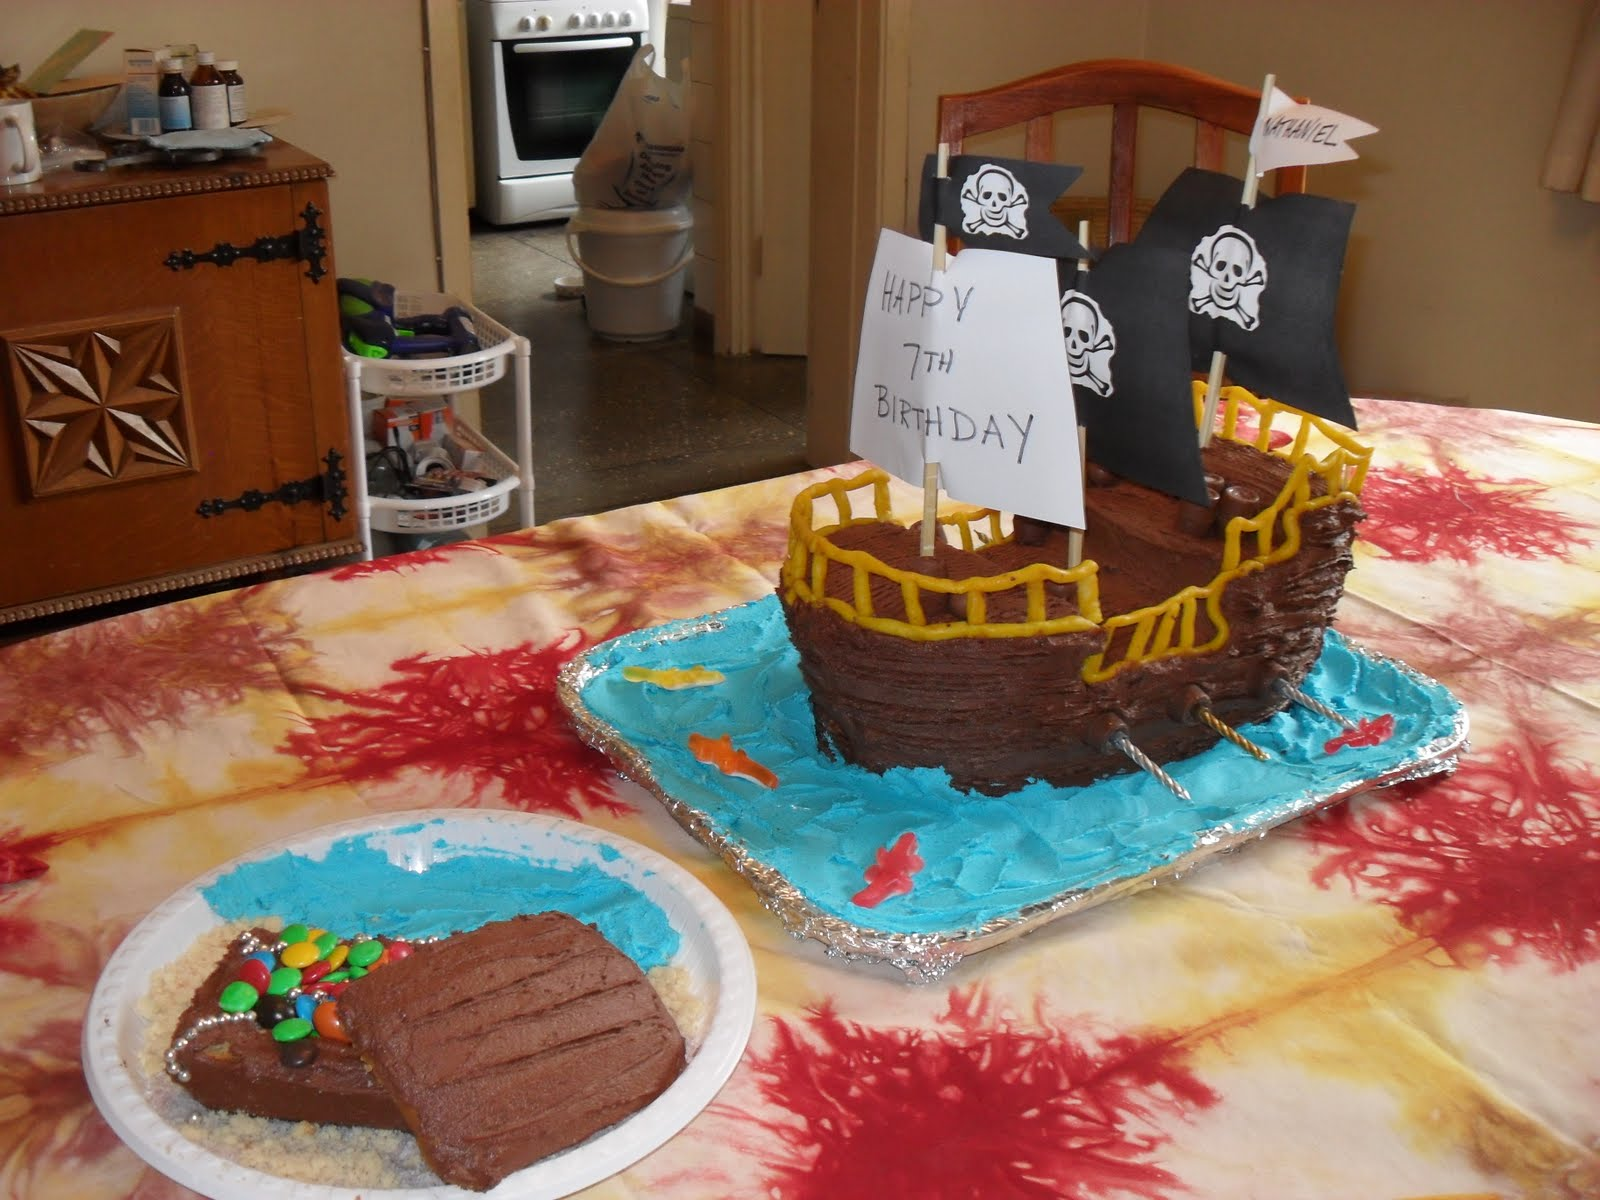 Easy to Make Pirate Cakes http://funwithcakedesigns.blogspot.co.uk/2011/06/how-to-make-pirate-ship-cake-and.html